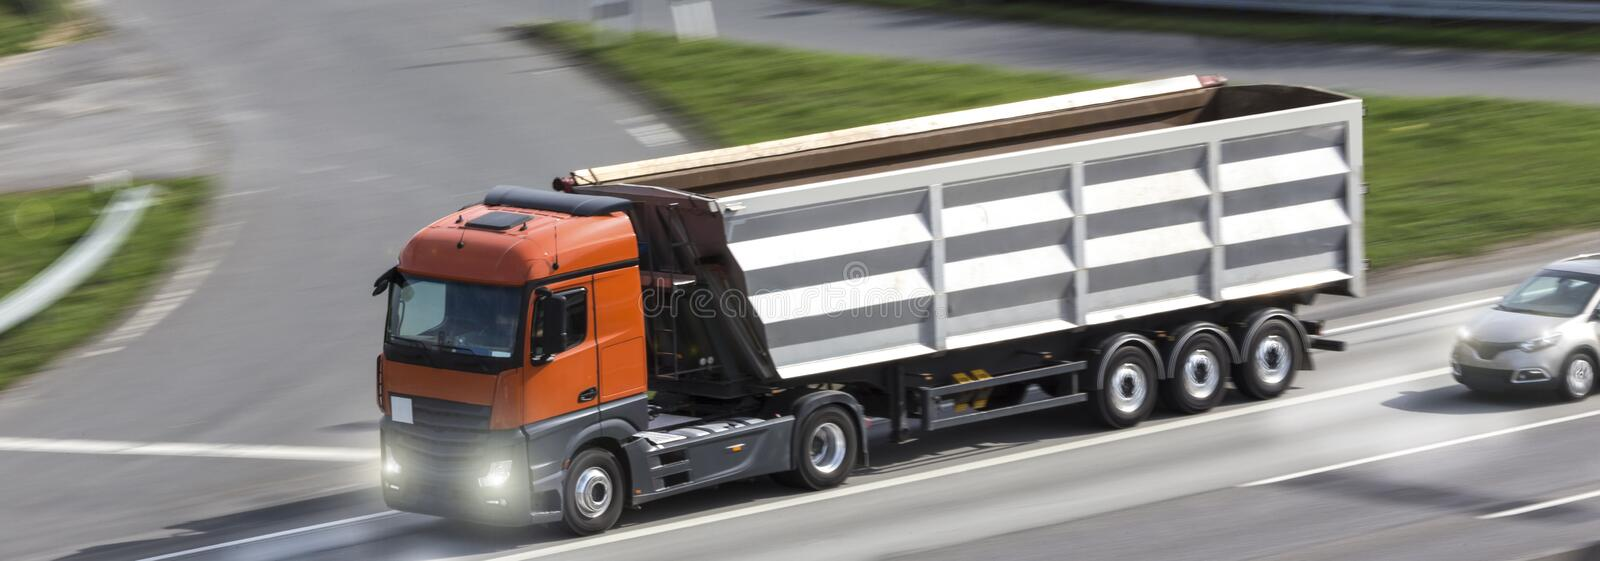 Construction truck speeding on a highway. A construction truck speeding on a highway royalty free stock images